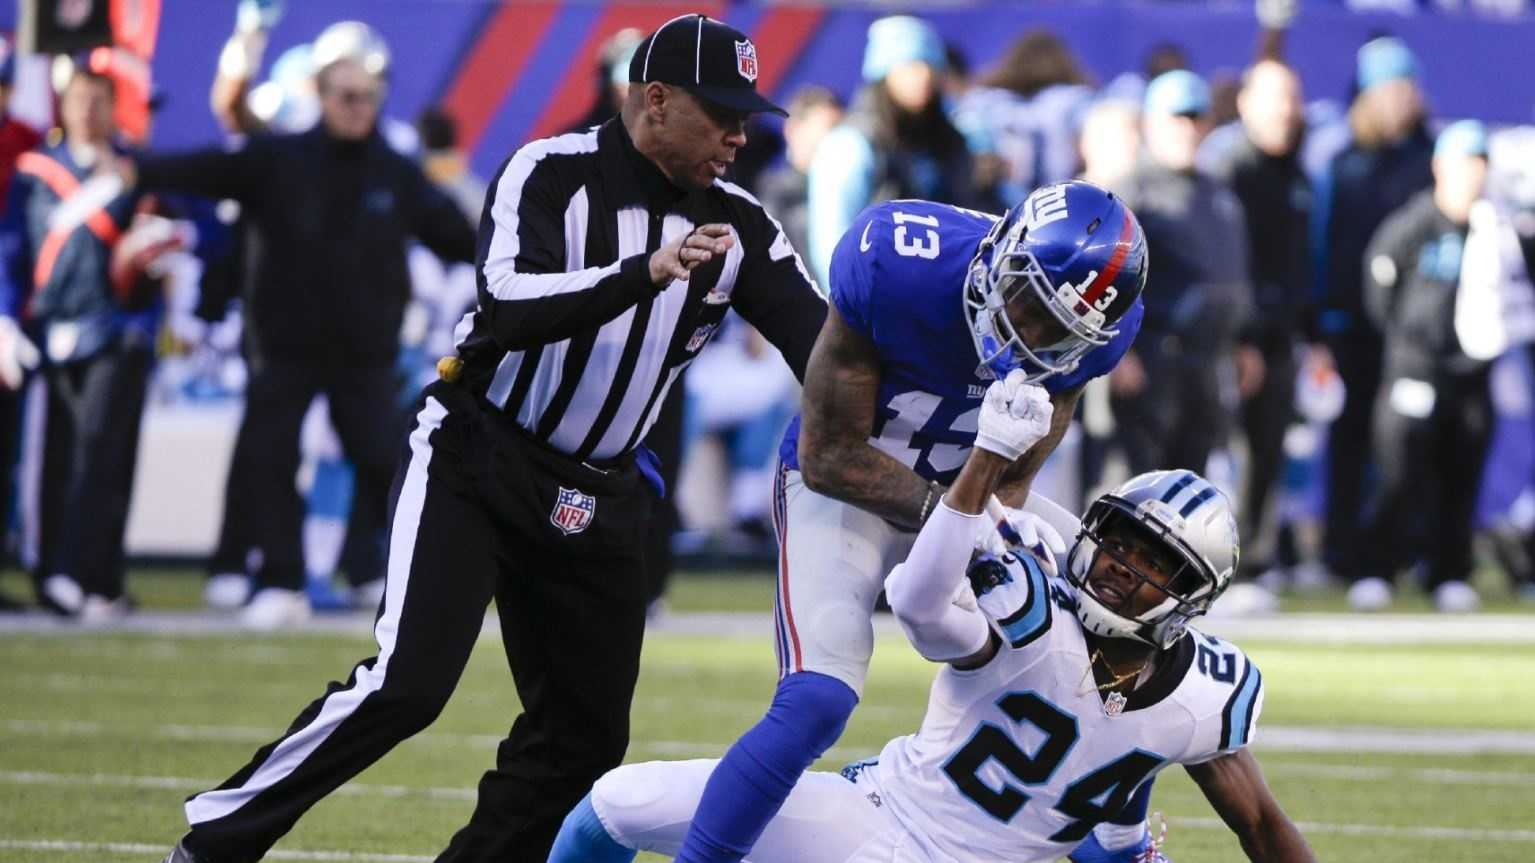 In this Dec. 20, 2015, file photo, a referee, left, separates New York Giants wide receiver Odell Beckham (13) and Carolina Panthers' Josh Norman (24) during the first half of an NFL football game Sunday, Dec. 20, 2015, in East Rutherford, N.J. The NFL's powerful competition committee is recommending making extra point kicks from the 15-yard line permanent, eliminating all chop blocks and ejecting a player for twice receiving certain unsportsmanlike conduct penalties.